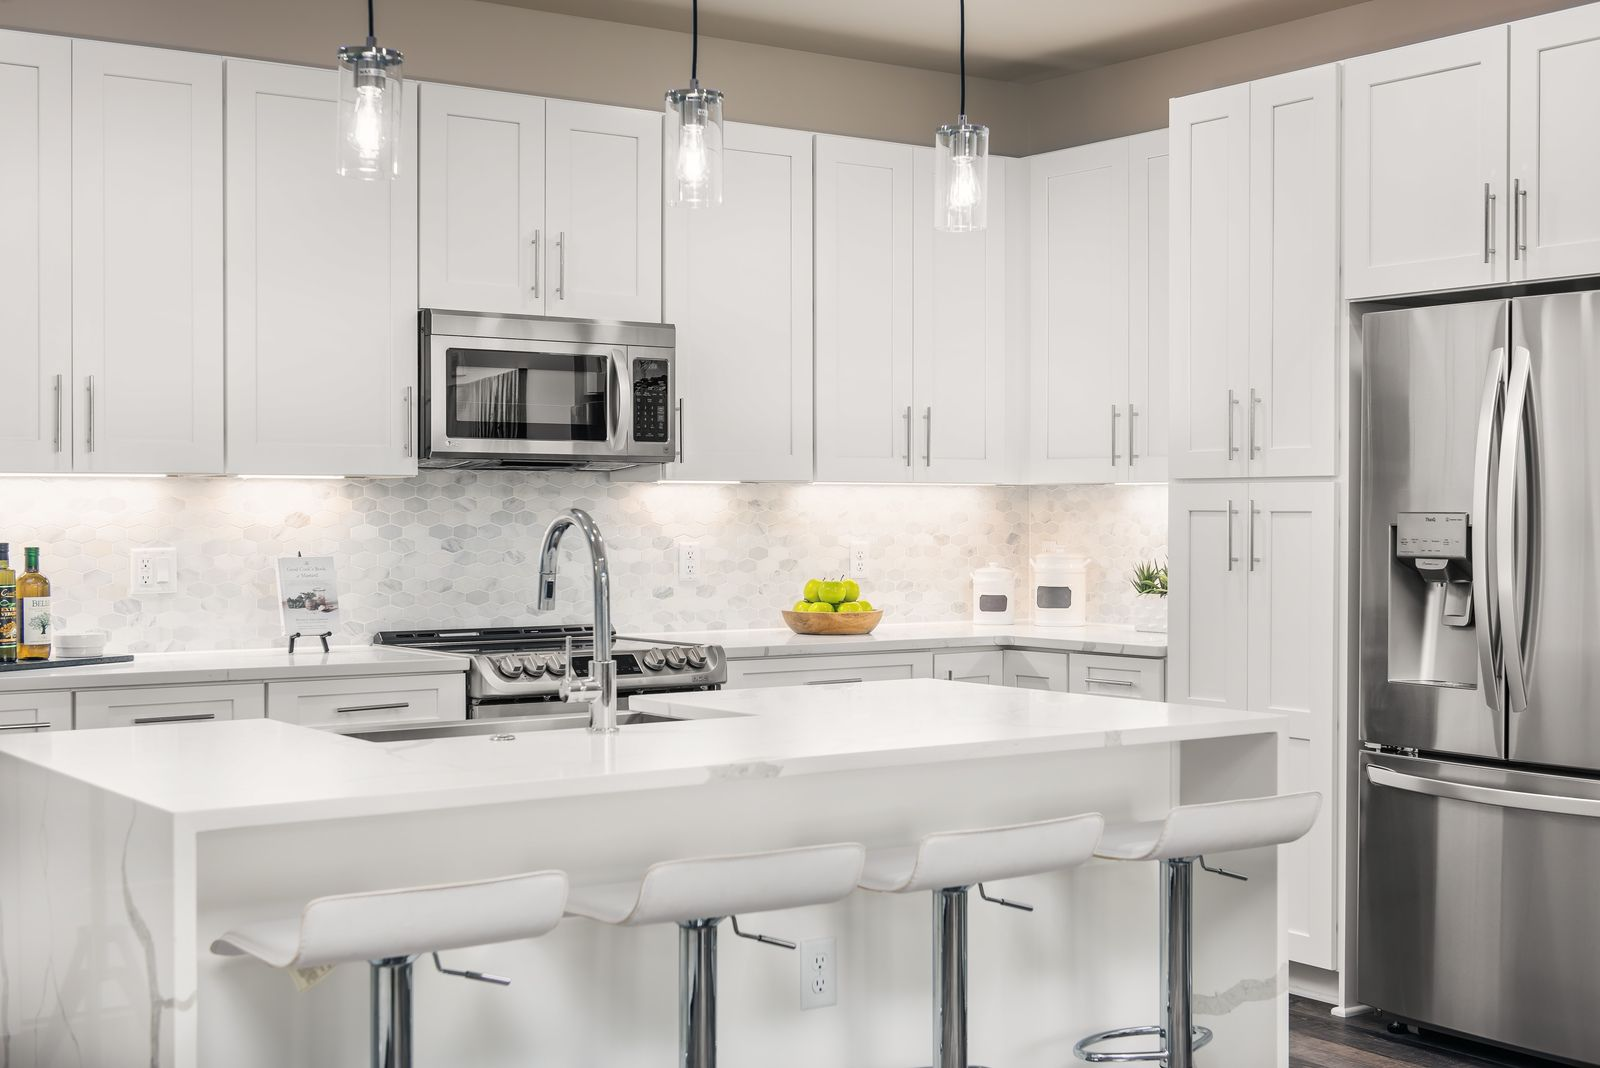 Kitchen featured in the 2 Bedroom 2.5 Bath By NVHomes in Washington, VA